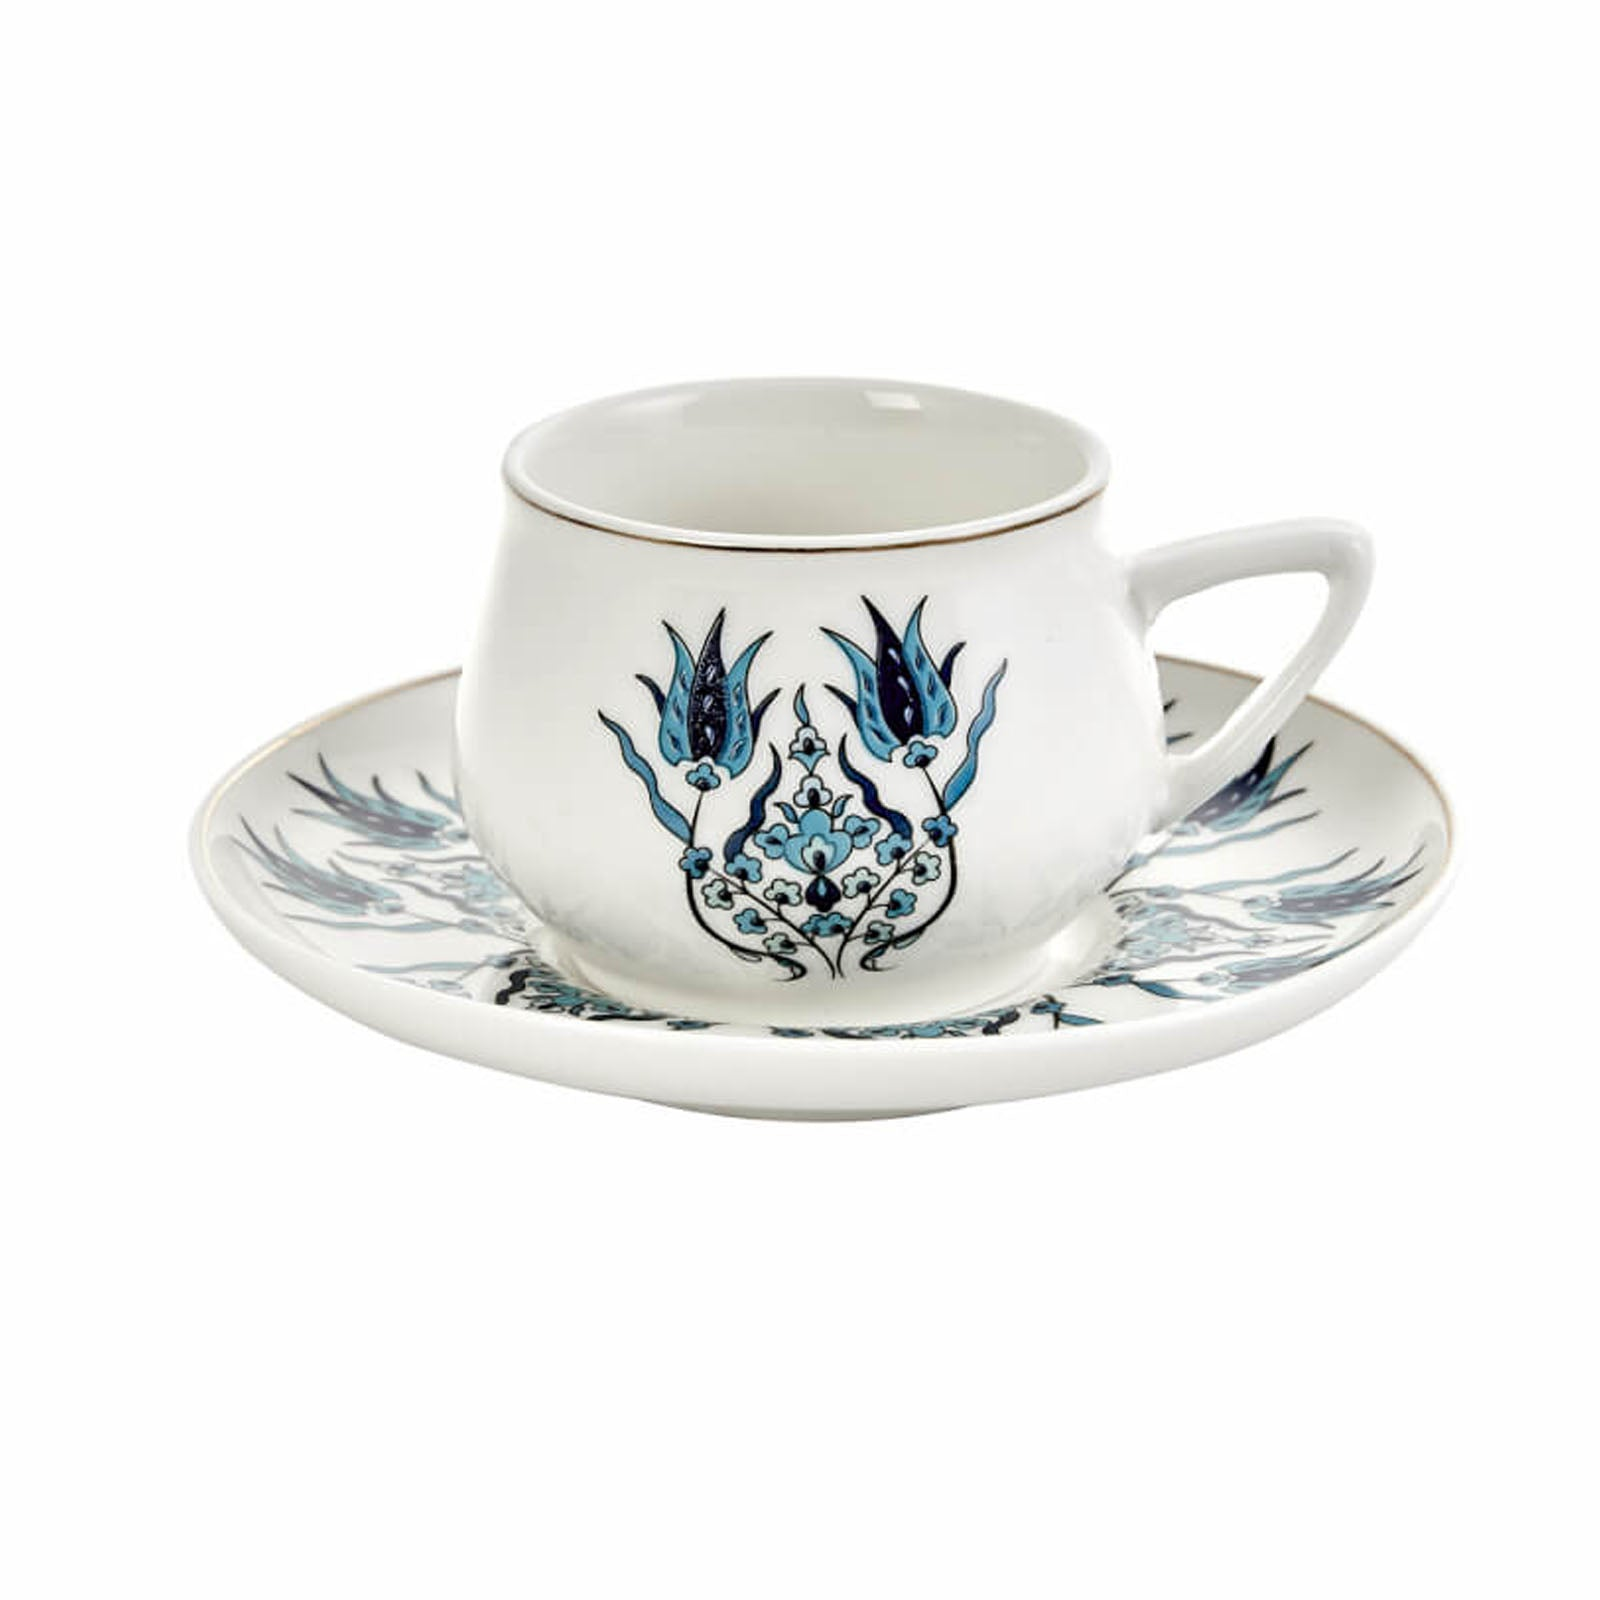 İznik New Form 6 Seater Coffee Cup Set 153.01.01.3803